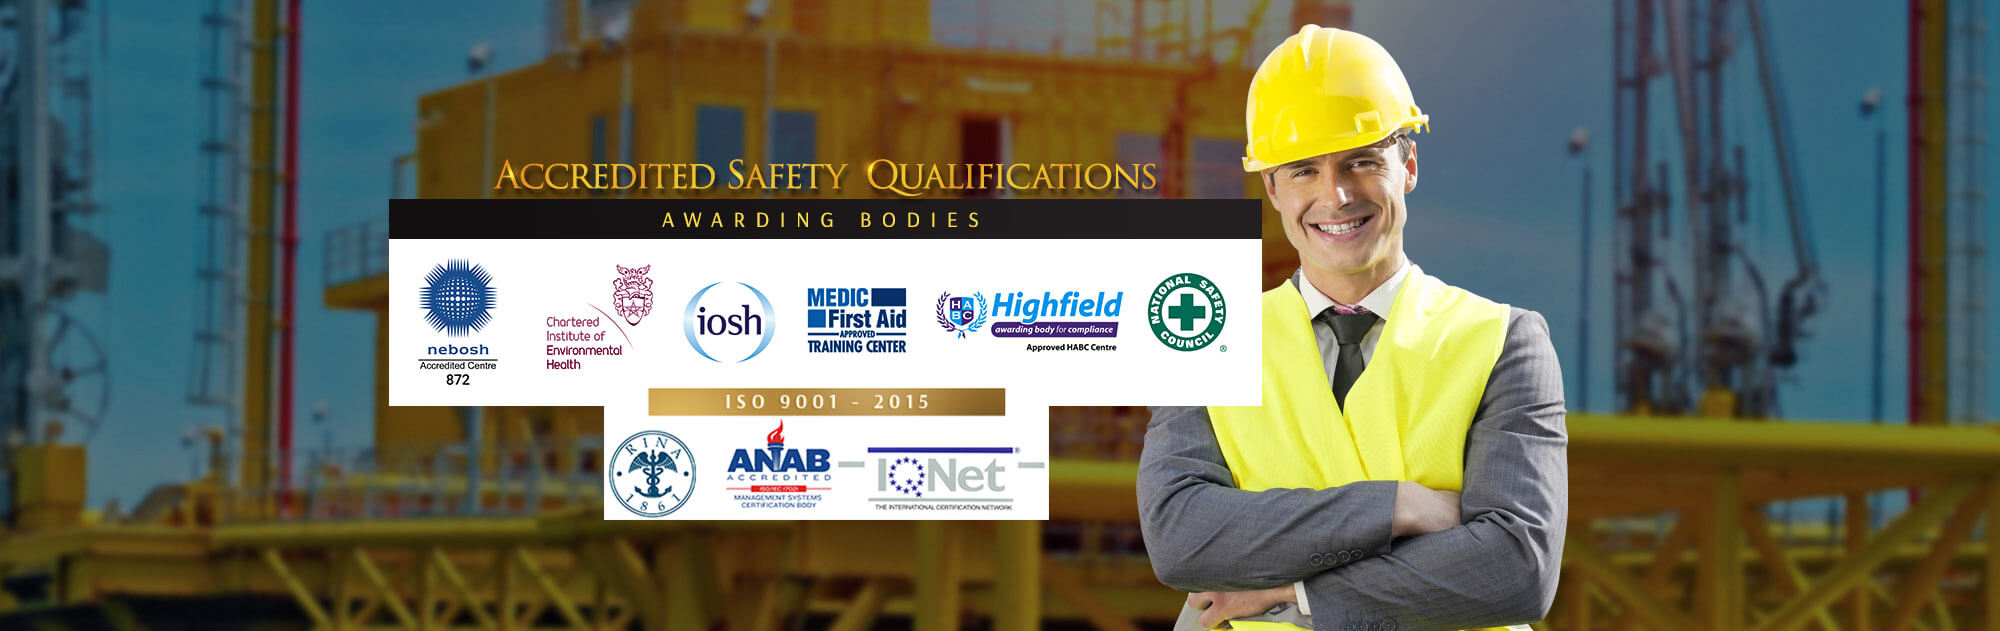 NEBOSH and other International Safety Qualifications